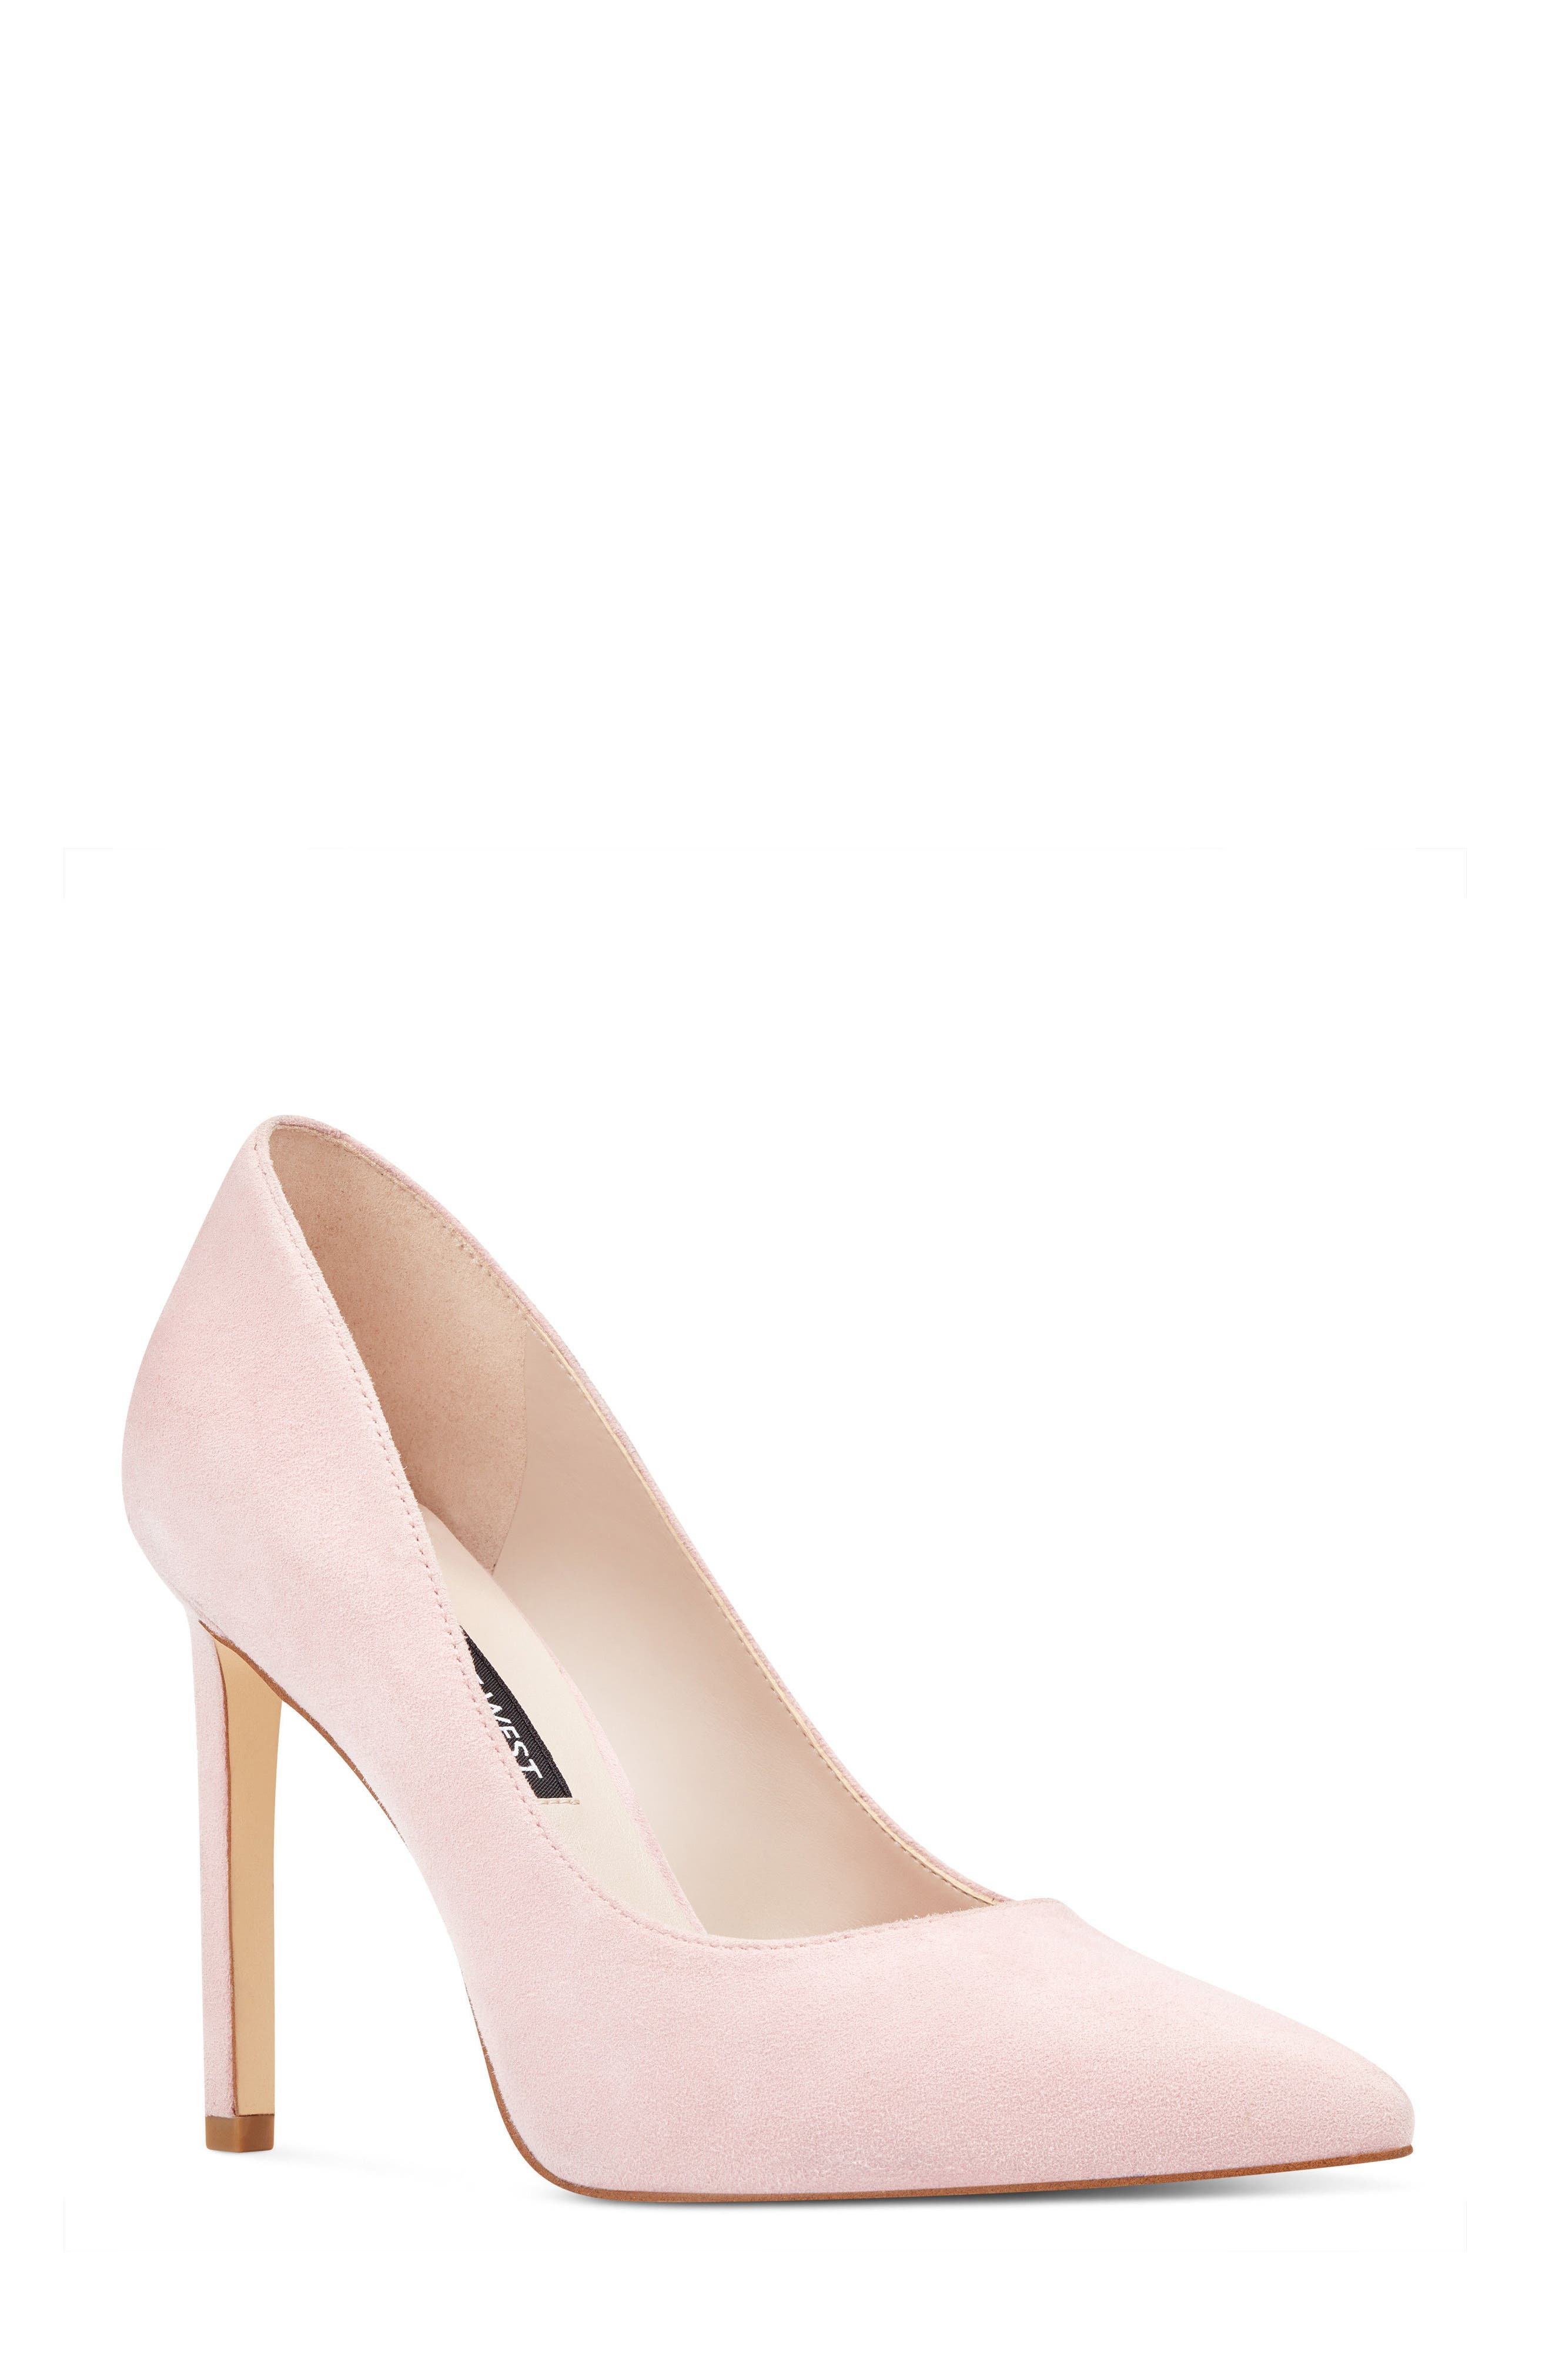 'Tatiana' Pointy Toe Pump,                             Main thumbnail 1, color,                             LIGHT PINK SUEDE